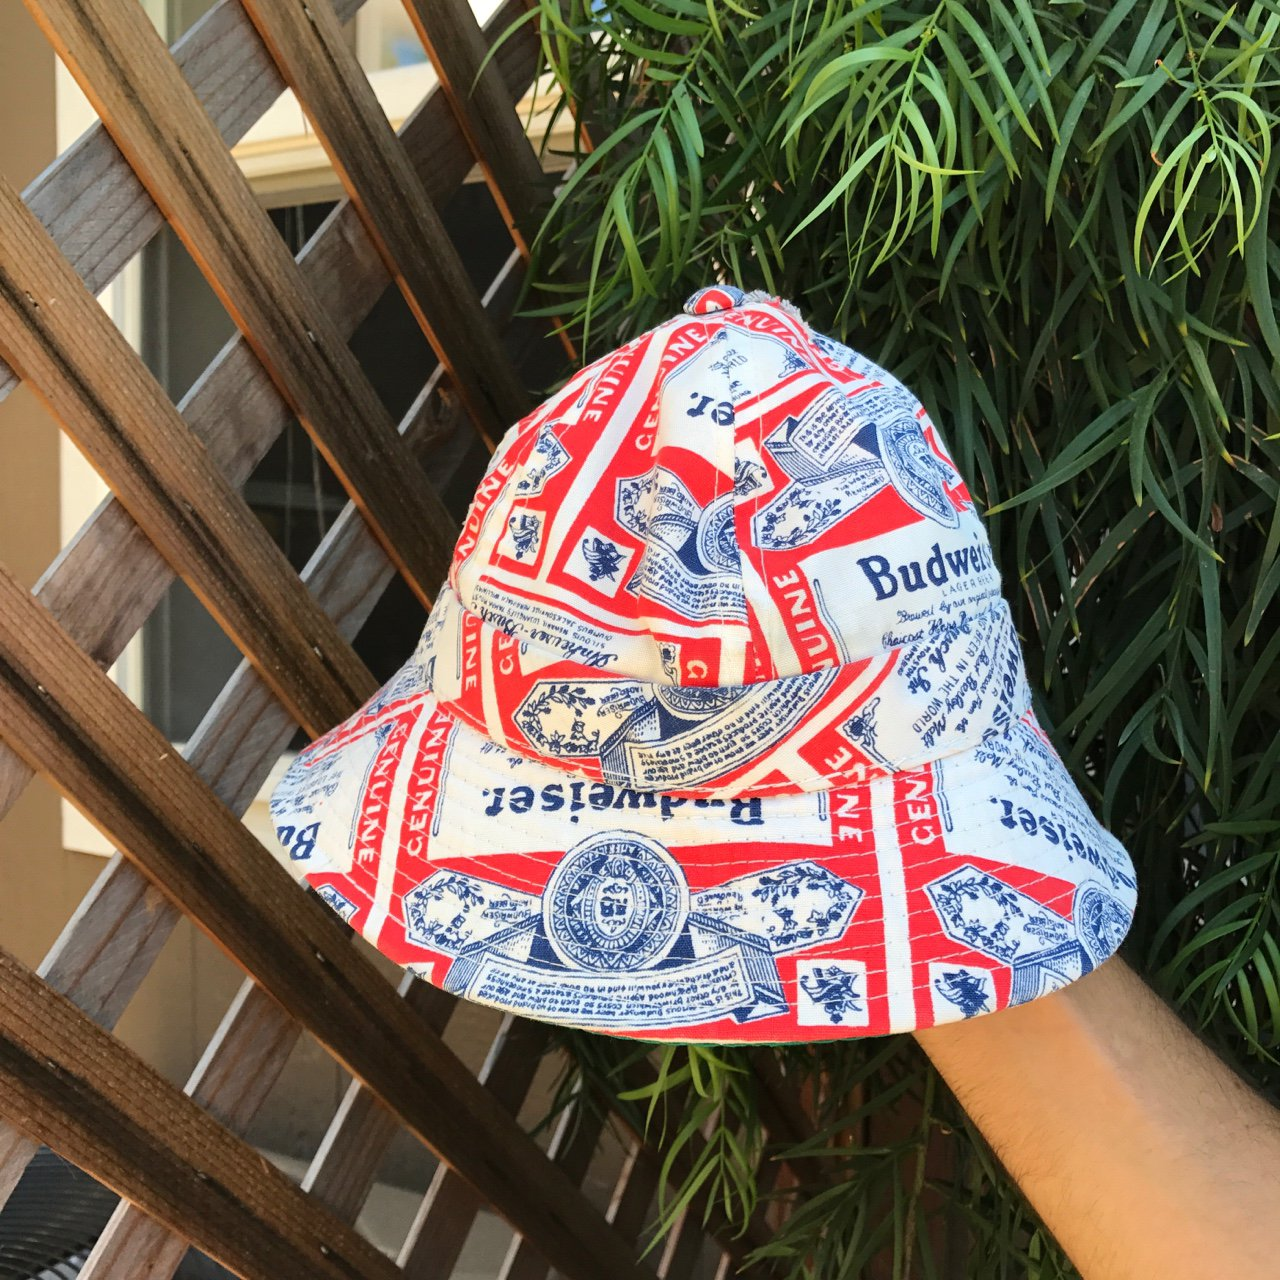 Vintage Budweiser Bucket Hat. Has some good old fashioned to - Depop 49ceae63ce6